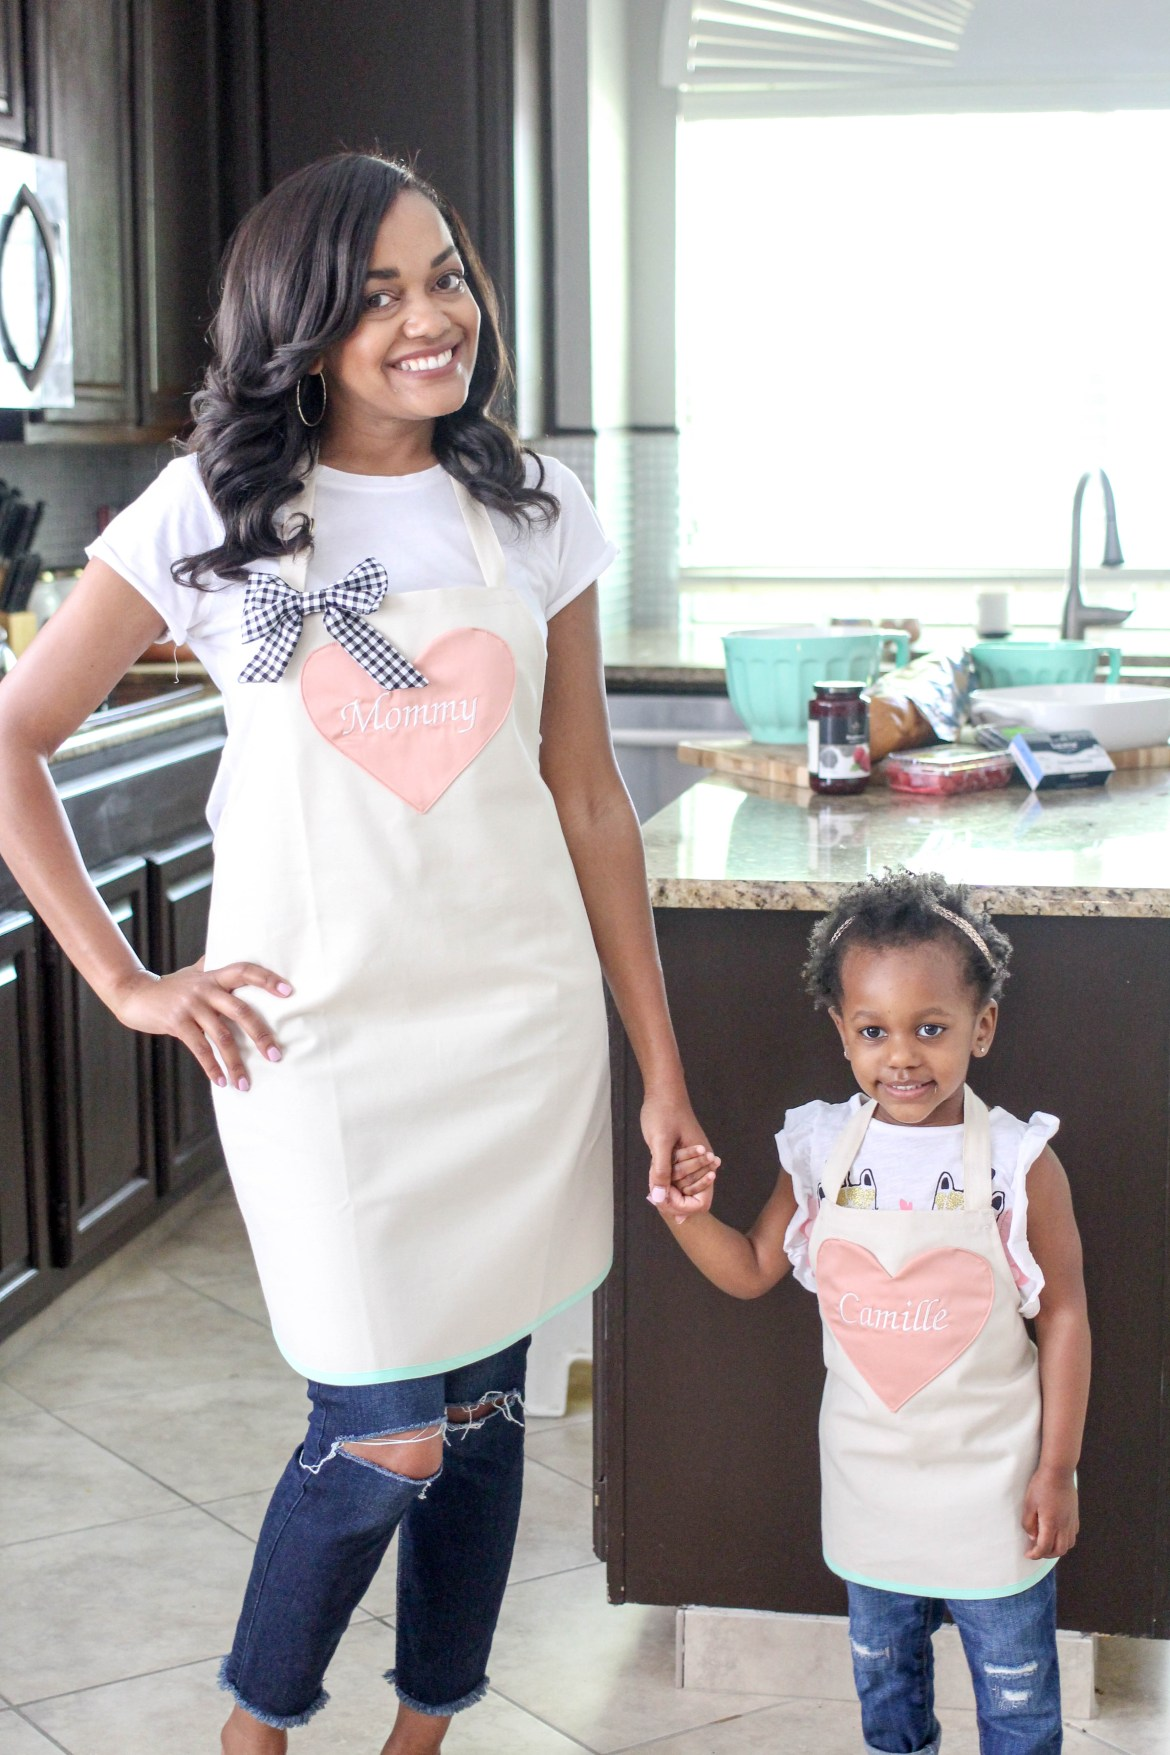 mothers day gifts, mothers day gift ideas, gifts for mom, mothers day gift, mommy and me, personalized aprons, belle eve clothing, mommy and me cooking in kitchen, stuffed french toast, dallas blogger